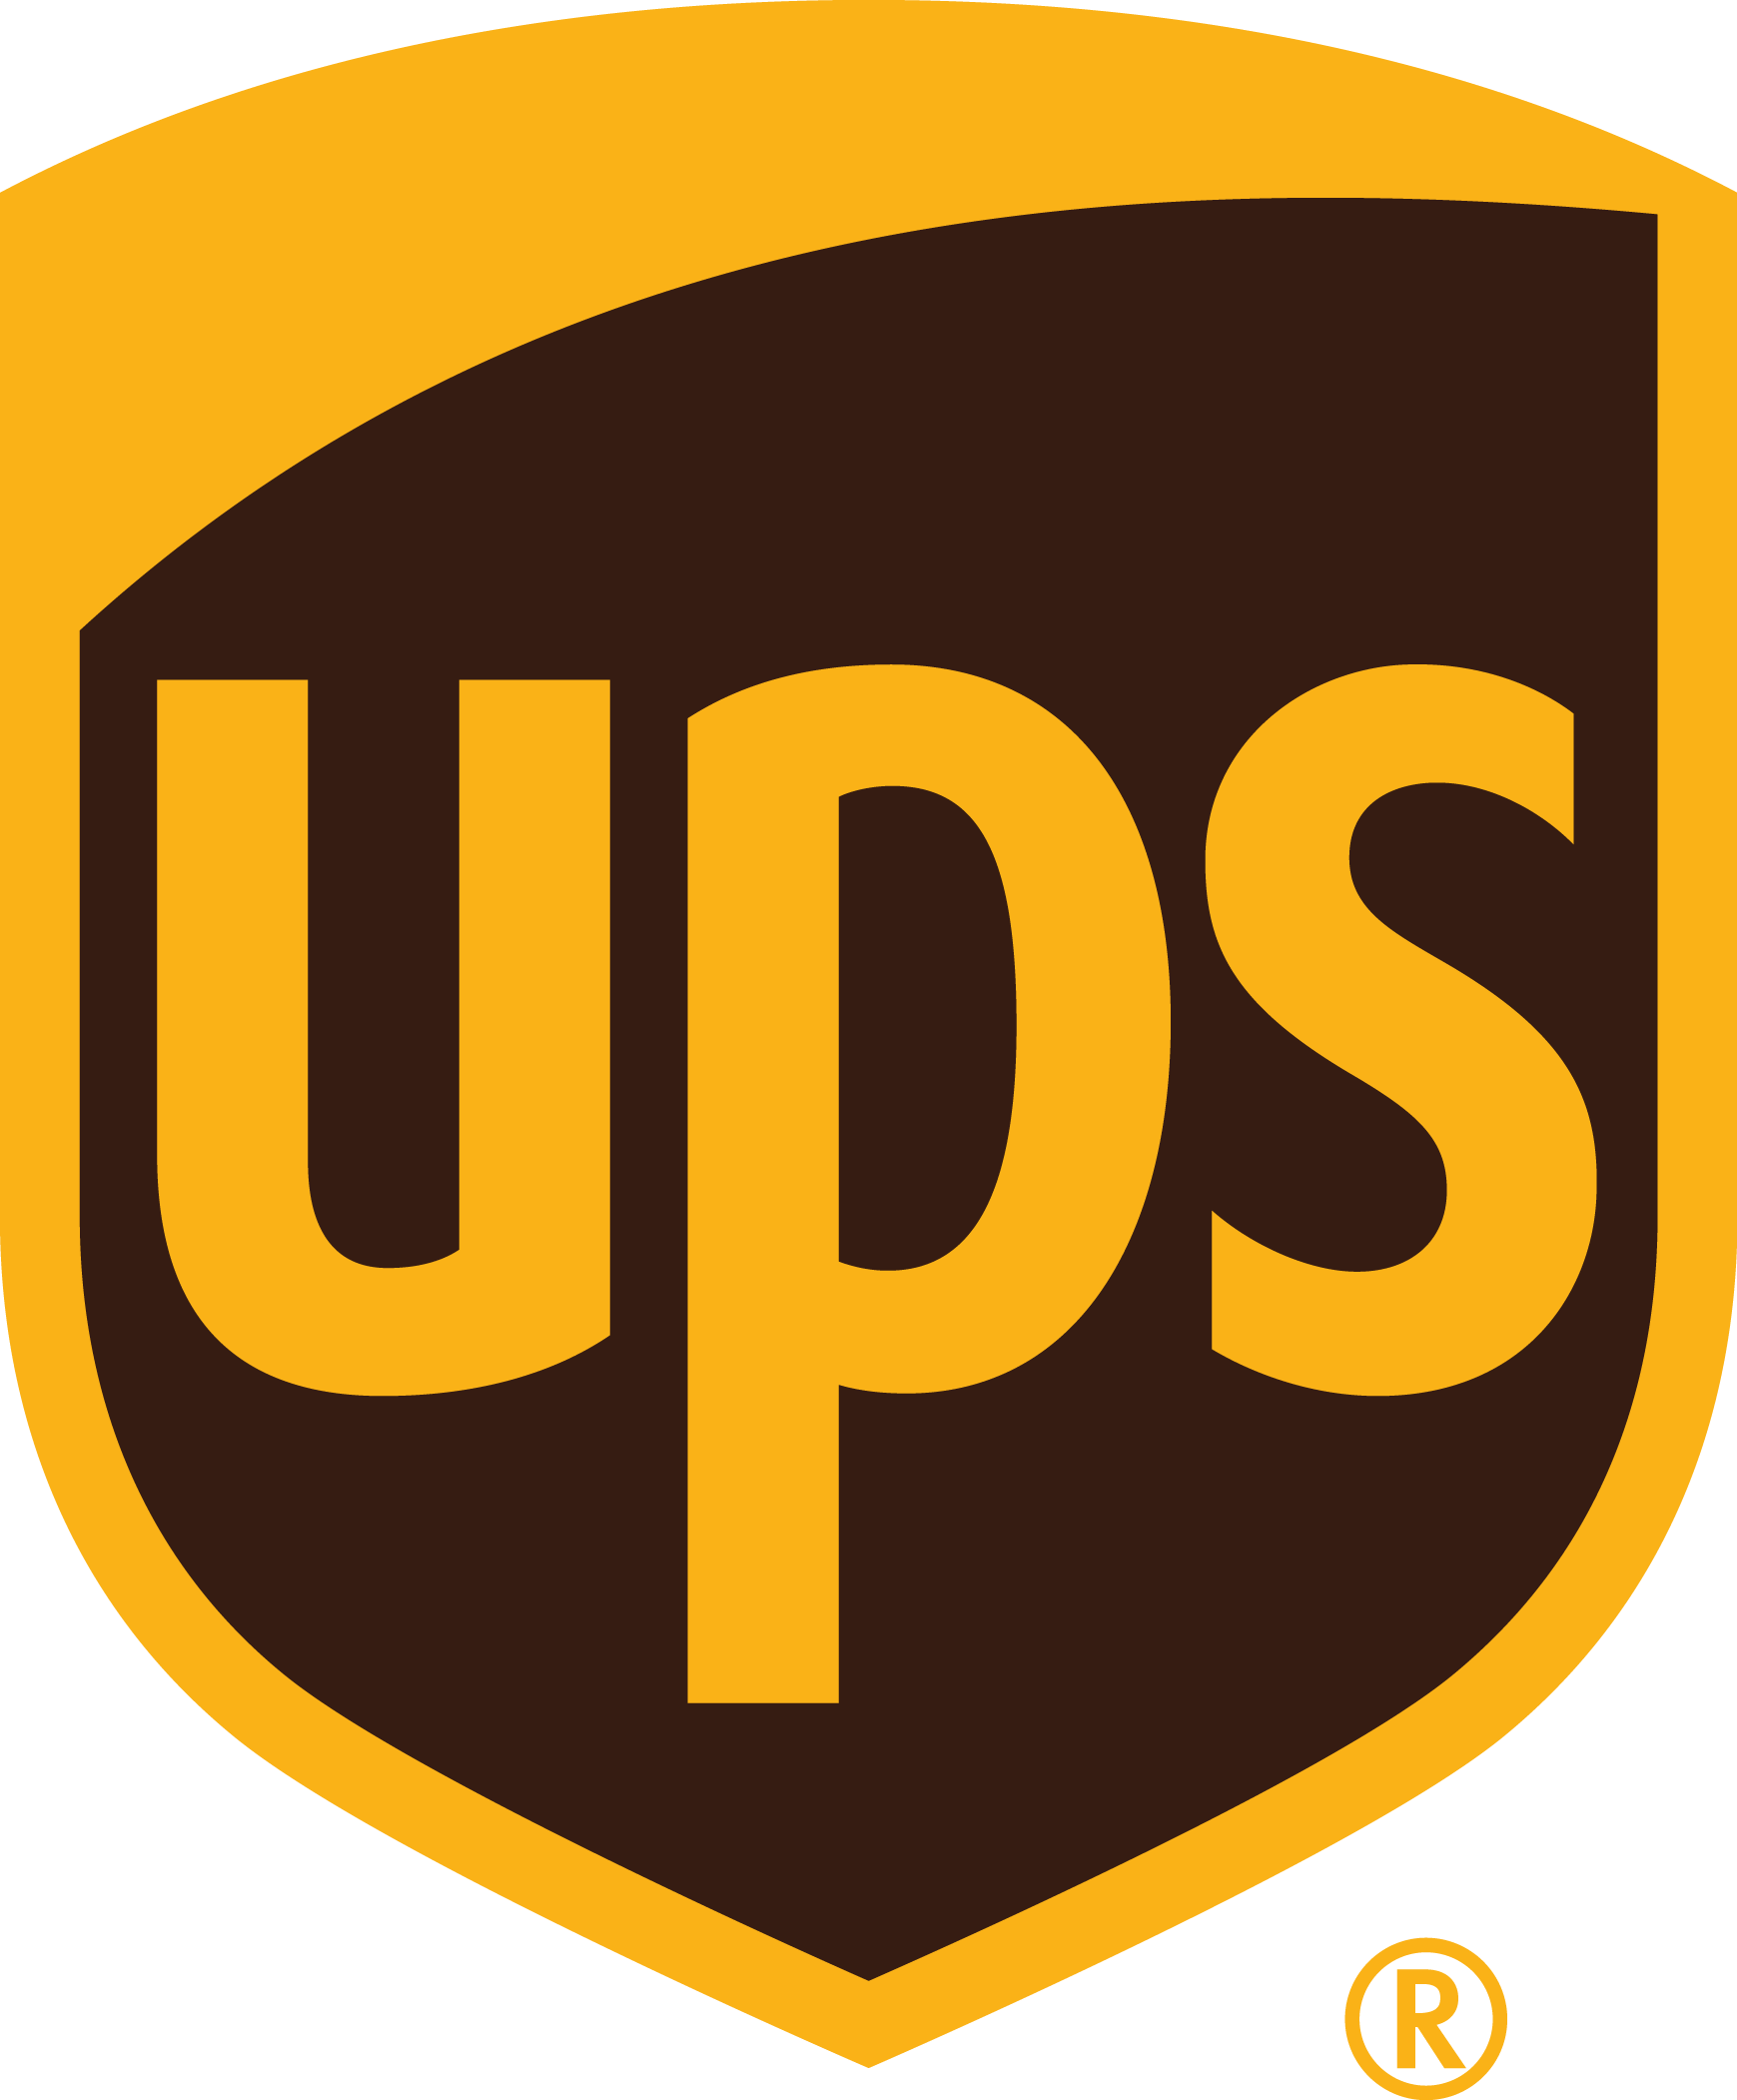 Ups logo united parcel. Exercise clipart pull up